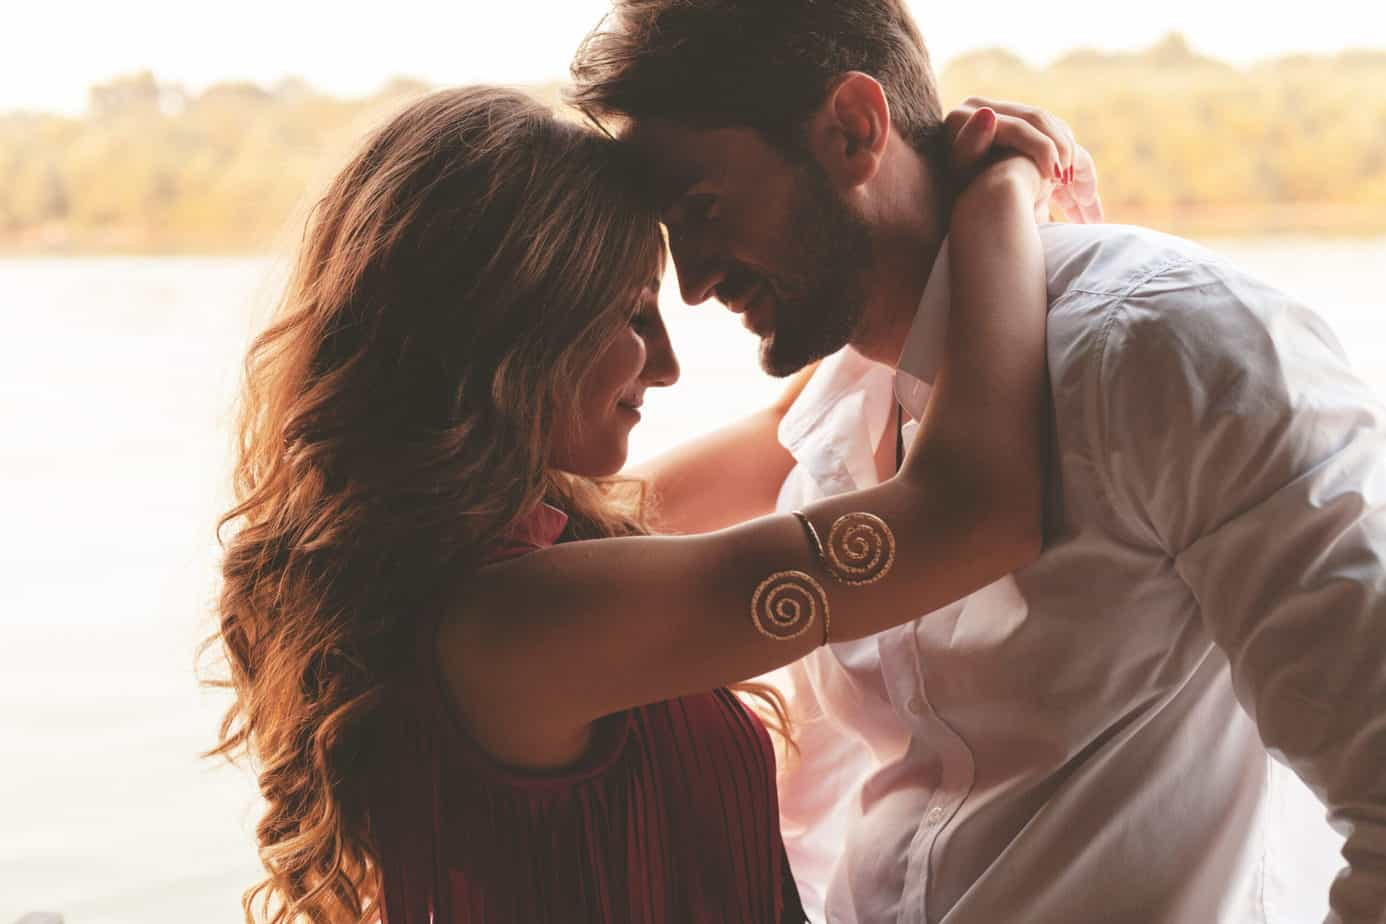 spice up your marriage - image of attractive couple embracing at sunset, woman has arms around man's neck and their foreheads are touching